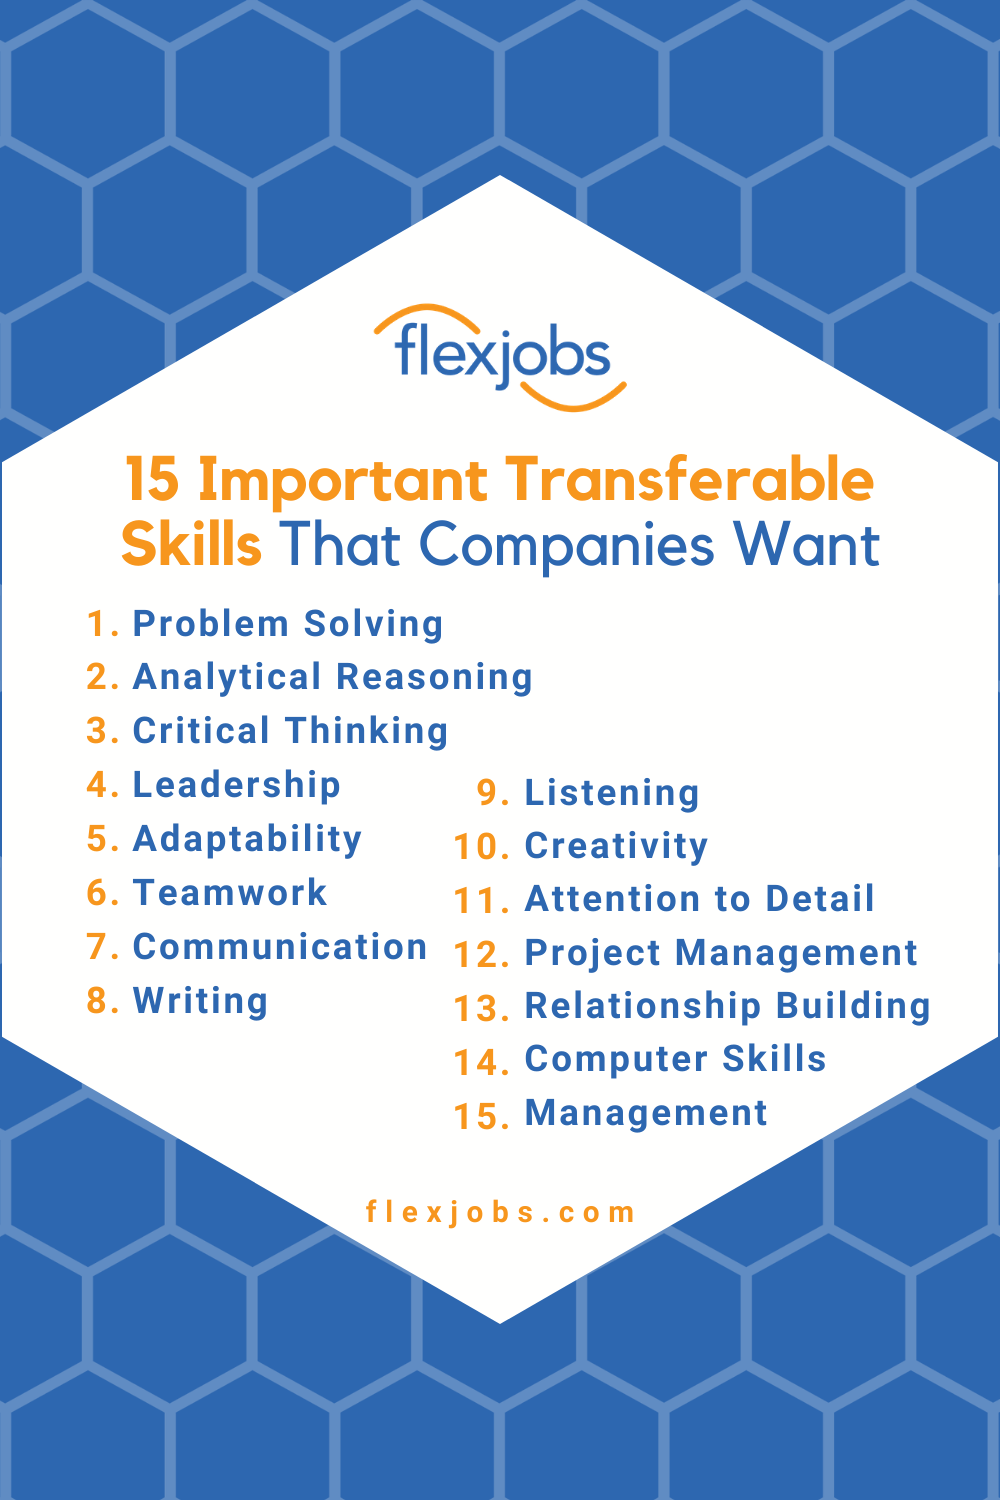 15 Transferable Skills That Companies Want in 2020